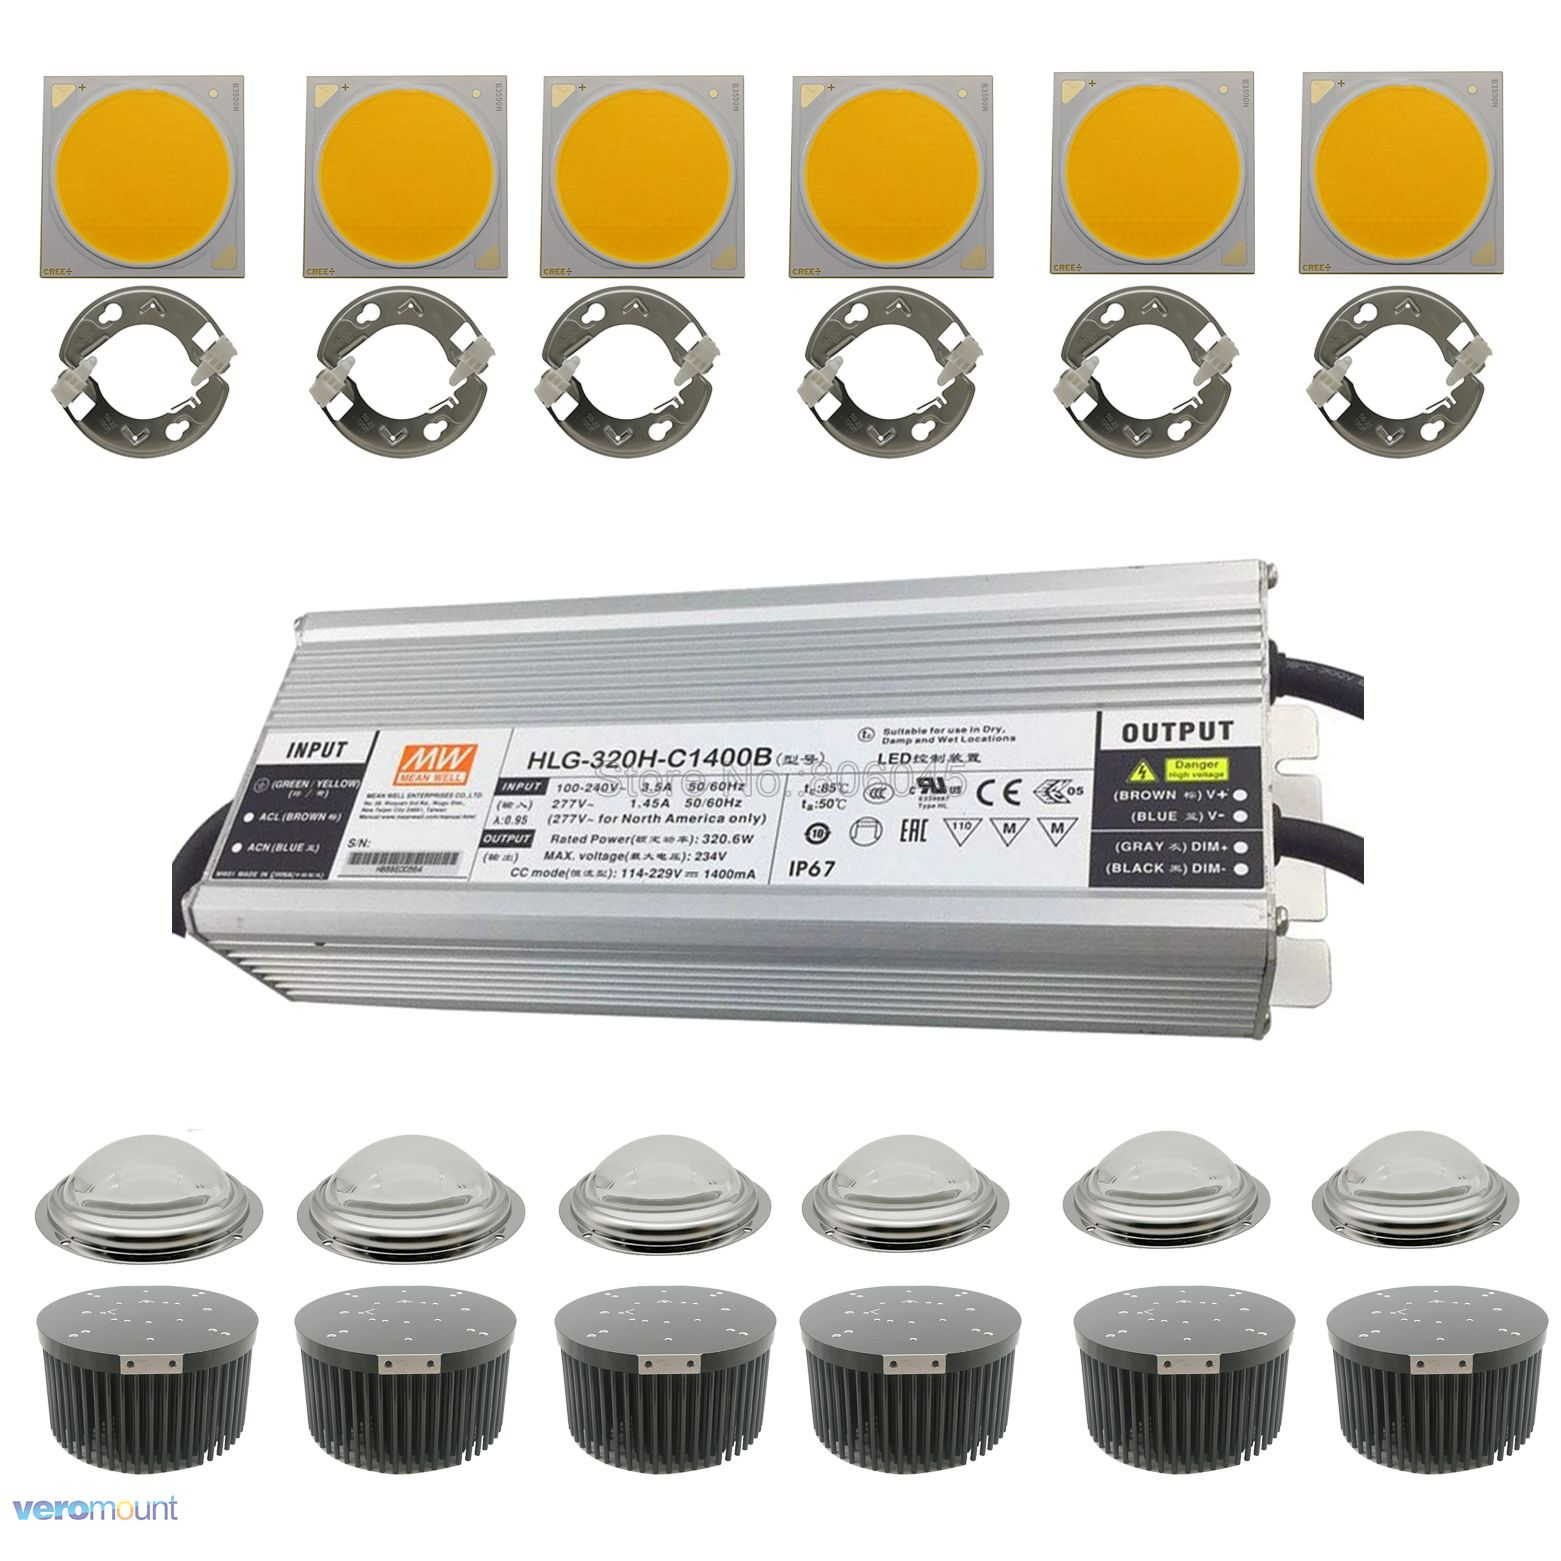 320W 6pcs CREE COB CXB3590 LED Plant Grow Light Dimmable Mean Well HLH-320H-C1400B Driver 133mm Heatsink Ideal Holder 100mm Lens